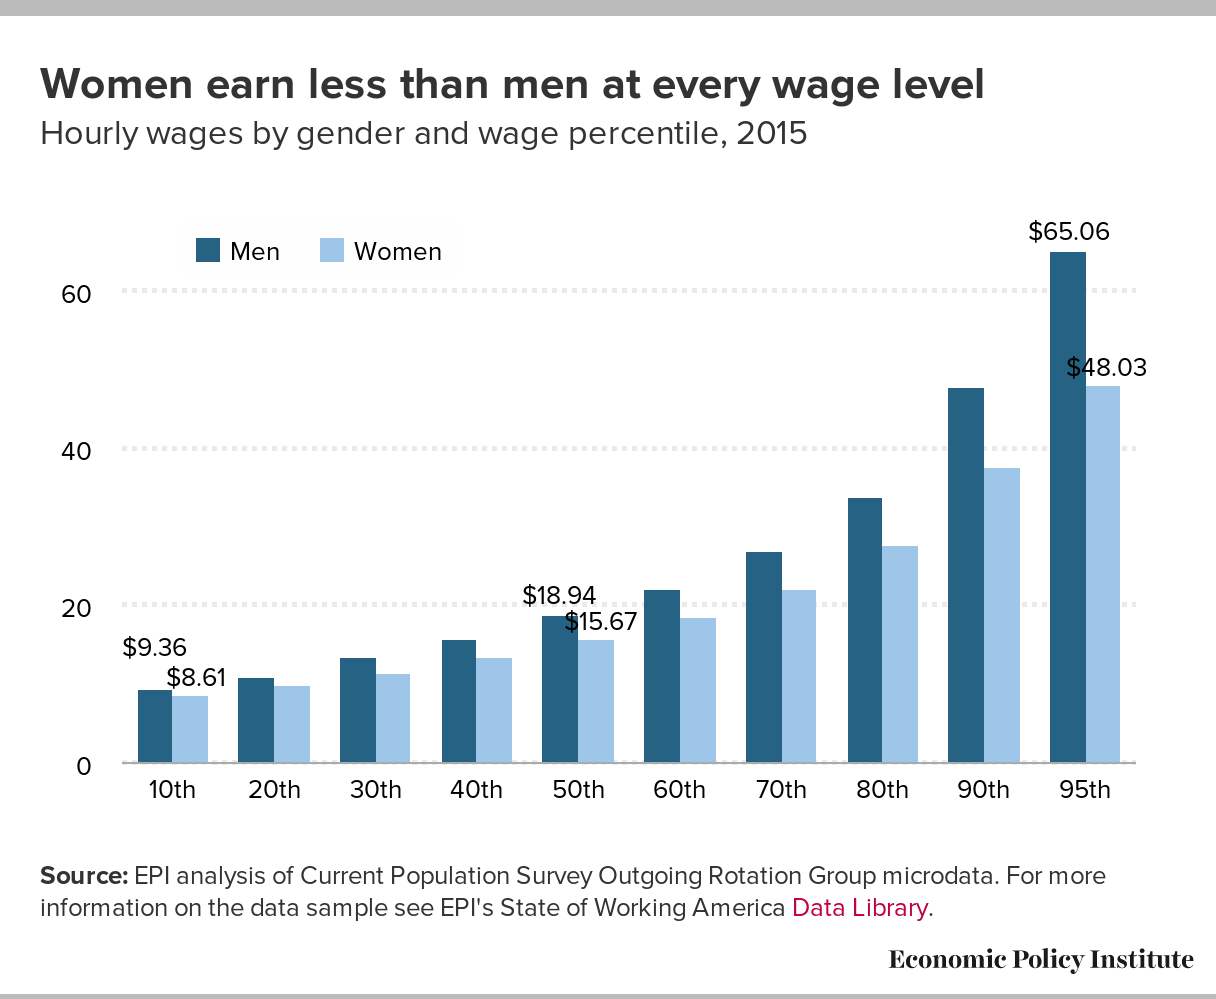 Women earn less than men at every wage level